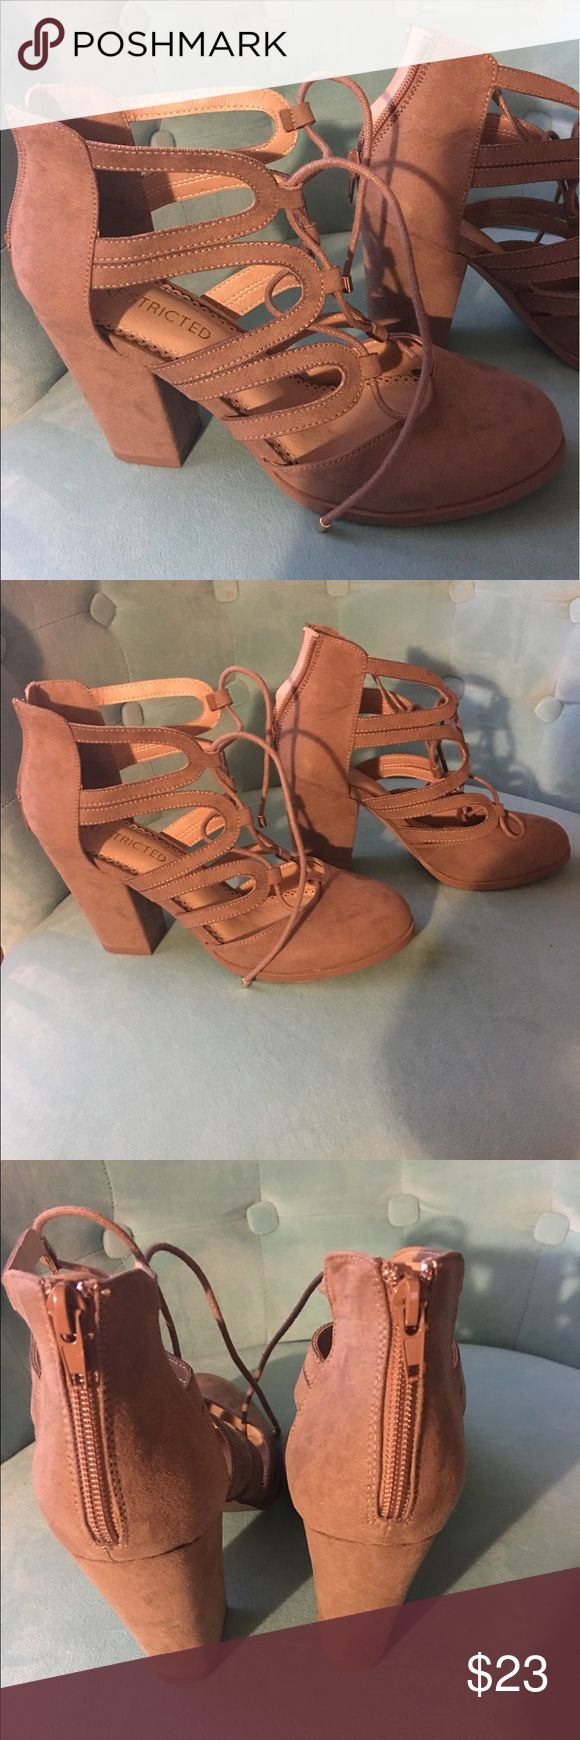 "Faux suede tan tie up heels. Never worn. Brand new ""Restricted"" brand from South Moon Under. Light tan, faux suede. Perfect condition. They are too small for me. Restricted Shoes Heels"